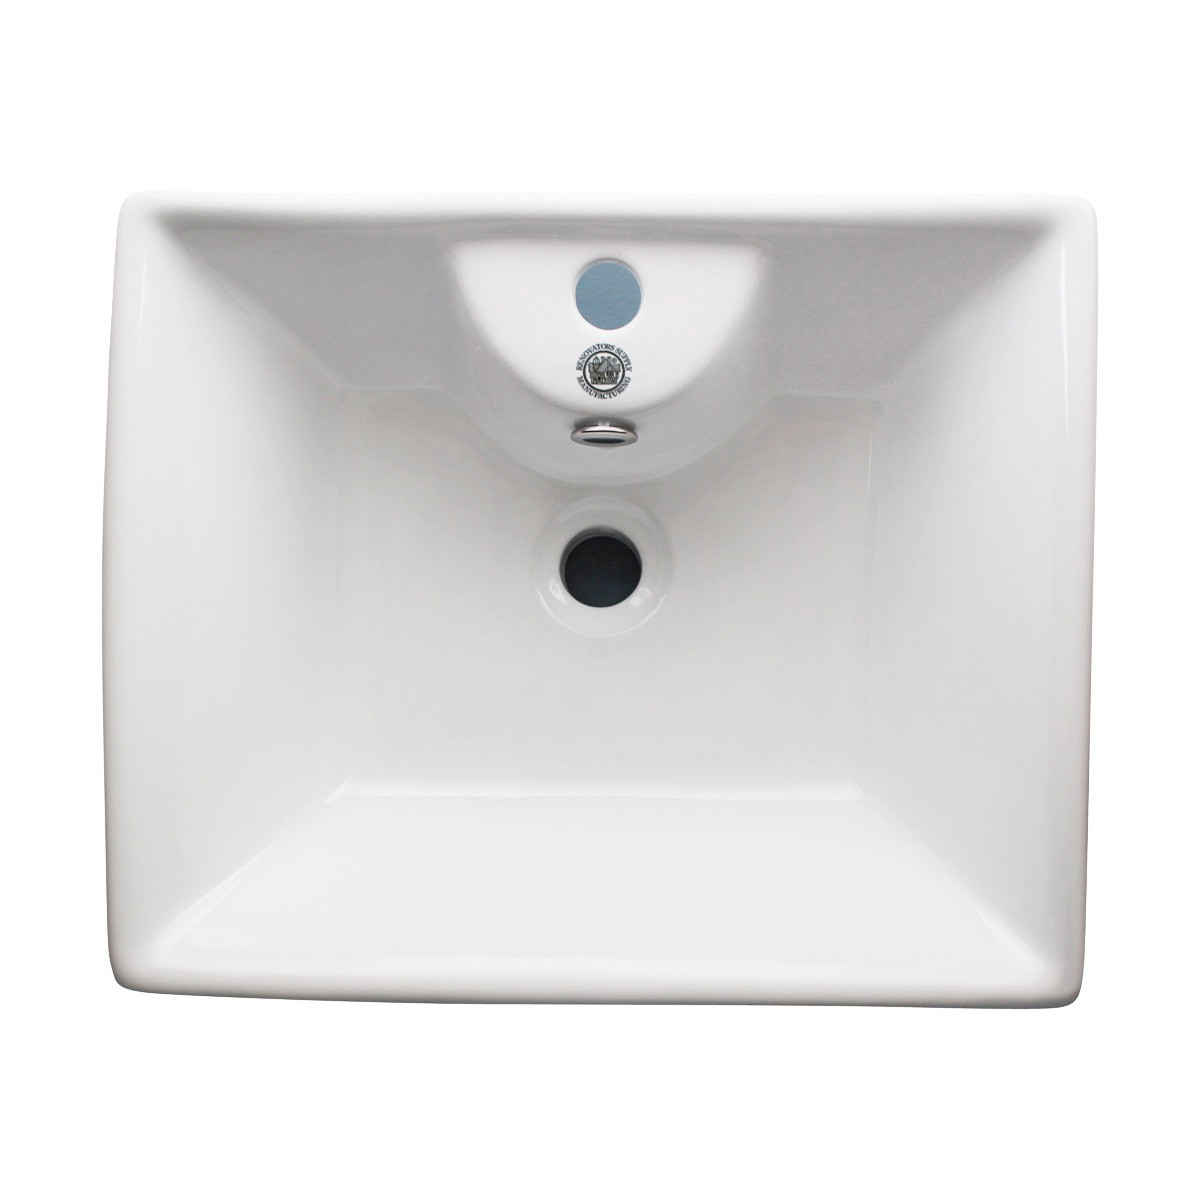 White Bathroom Vessel Basin Sink Bowl Above Counter Square with Overflow bathroom vessel sinks Countertop vessel sink White Bathroom Vessel Sink